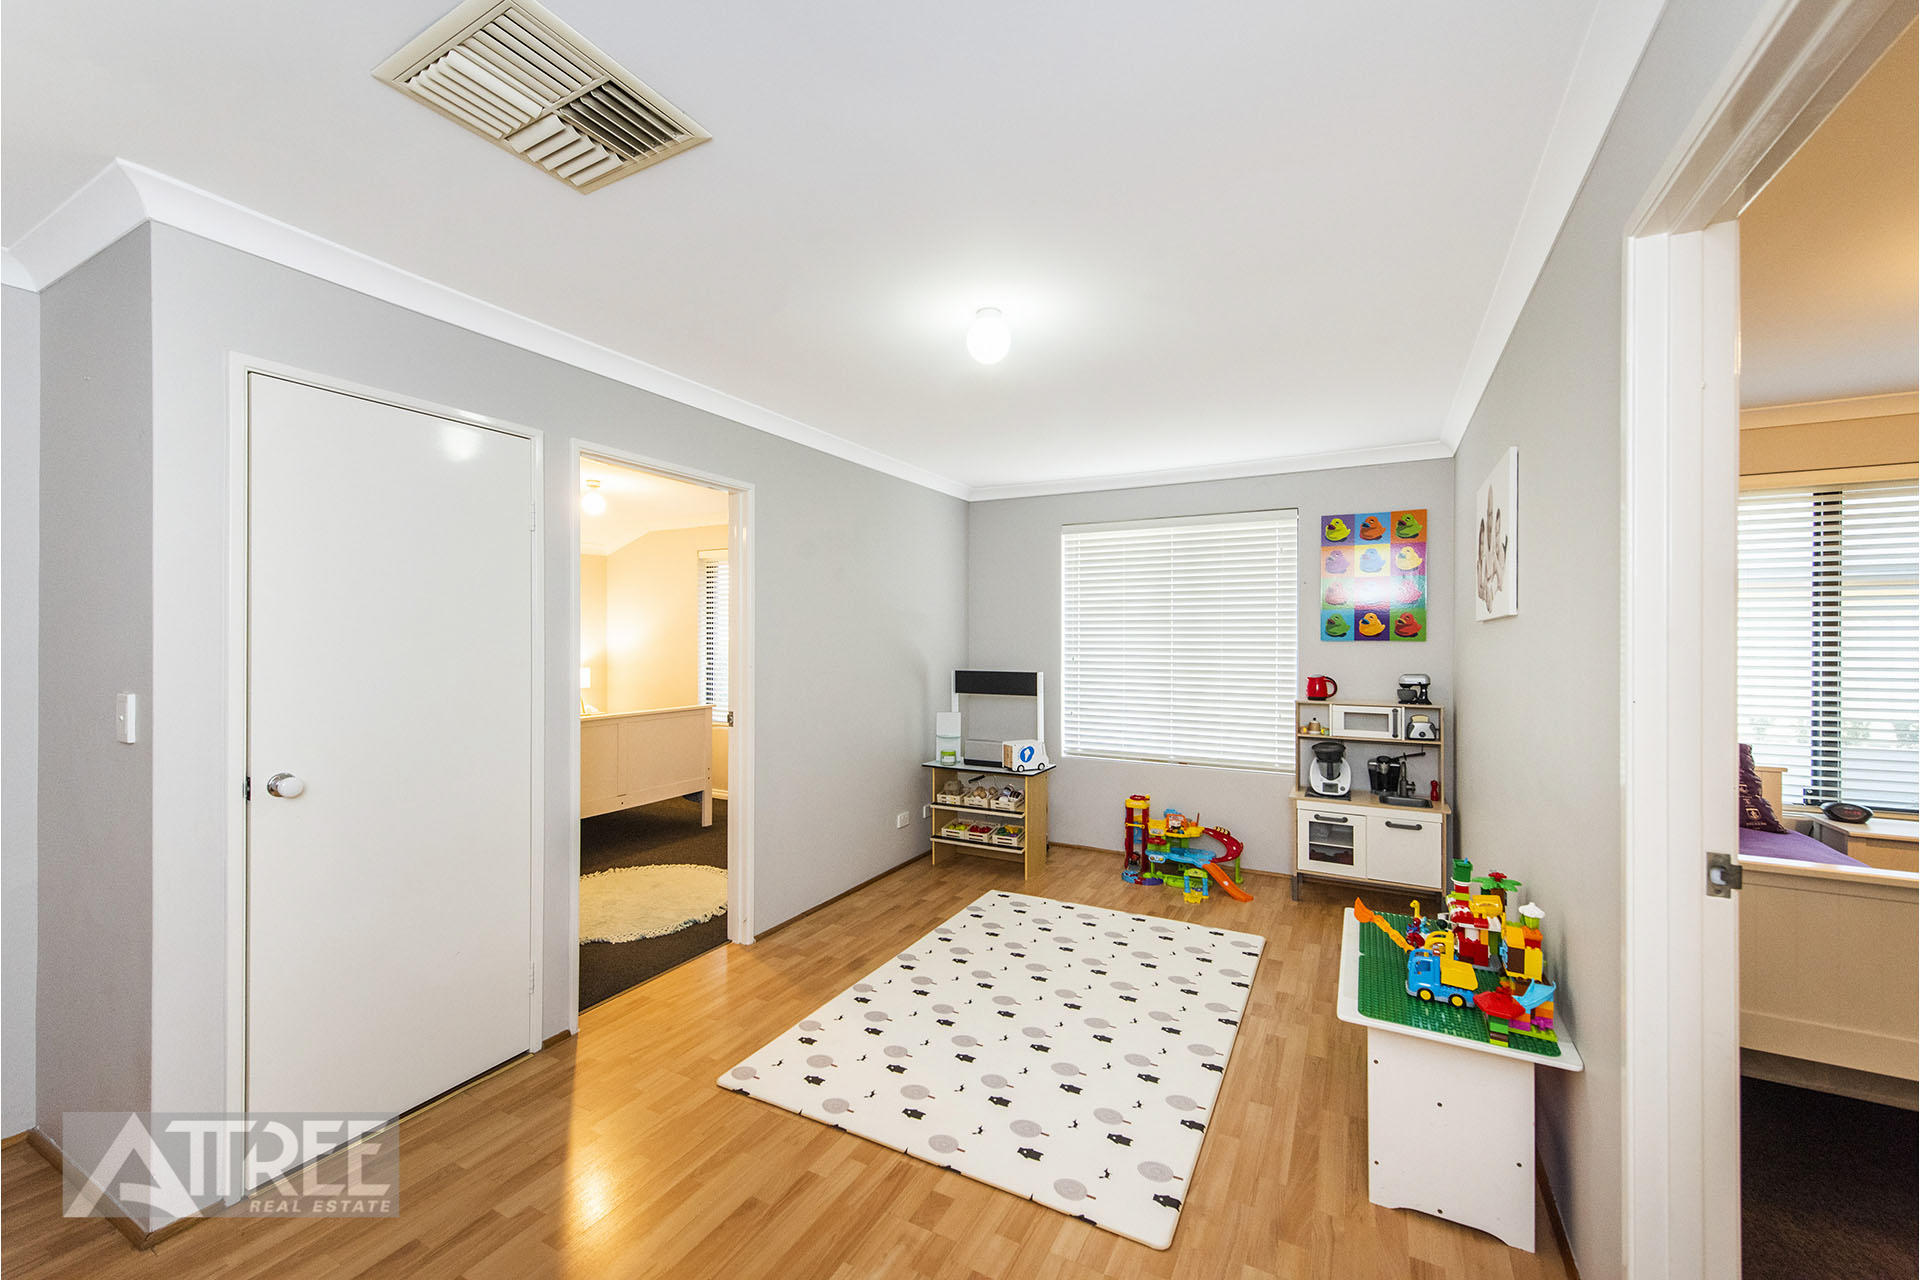 Property for sale in CANNING VALE, 69 Welbeck Road : Attree Real Estate